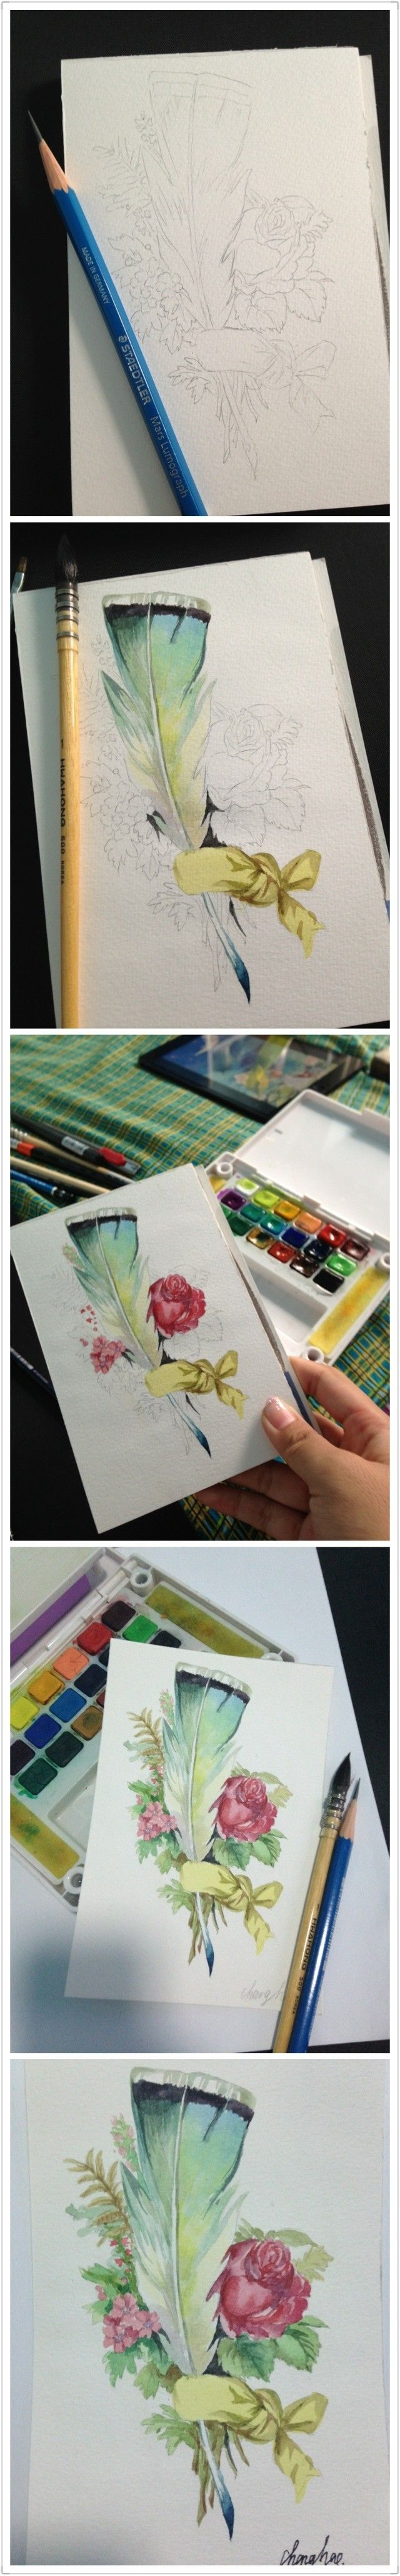 水彩插画 Feather, flower sketch illustration. Please also visit www.JustForYouPropheticArt.com for colorful, inspirational art and stories. Thank you so much.